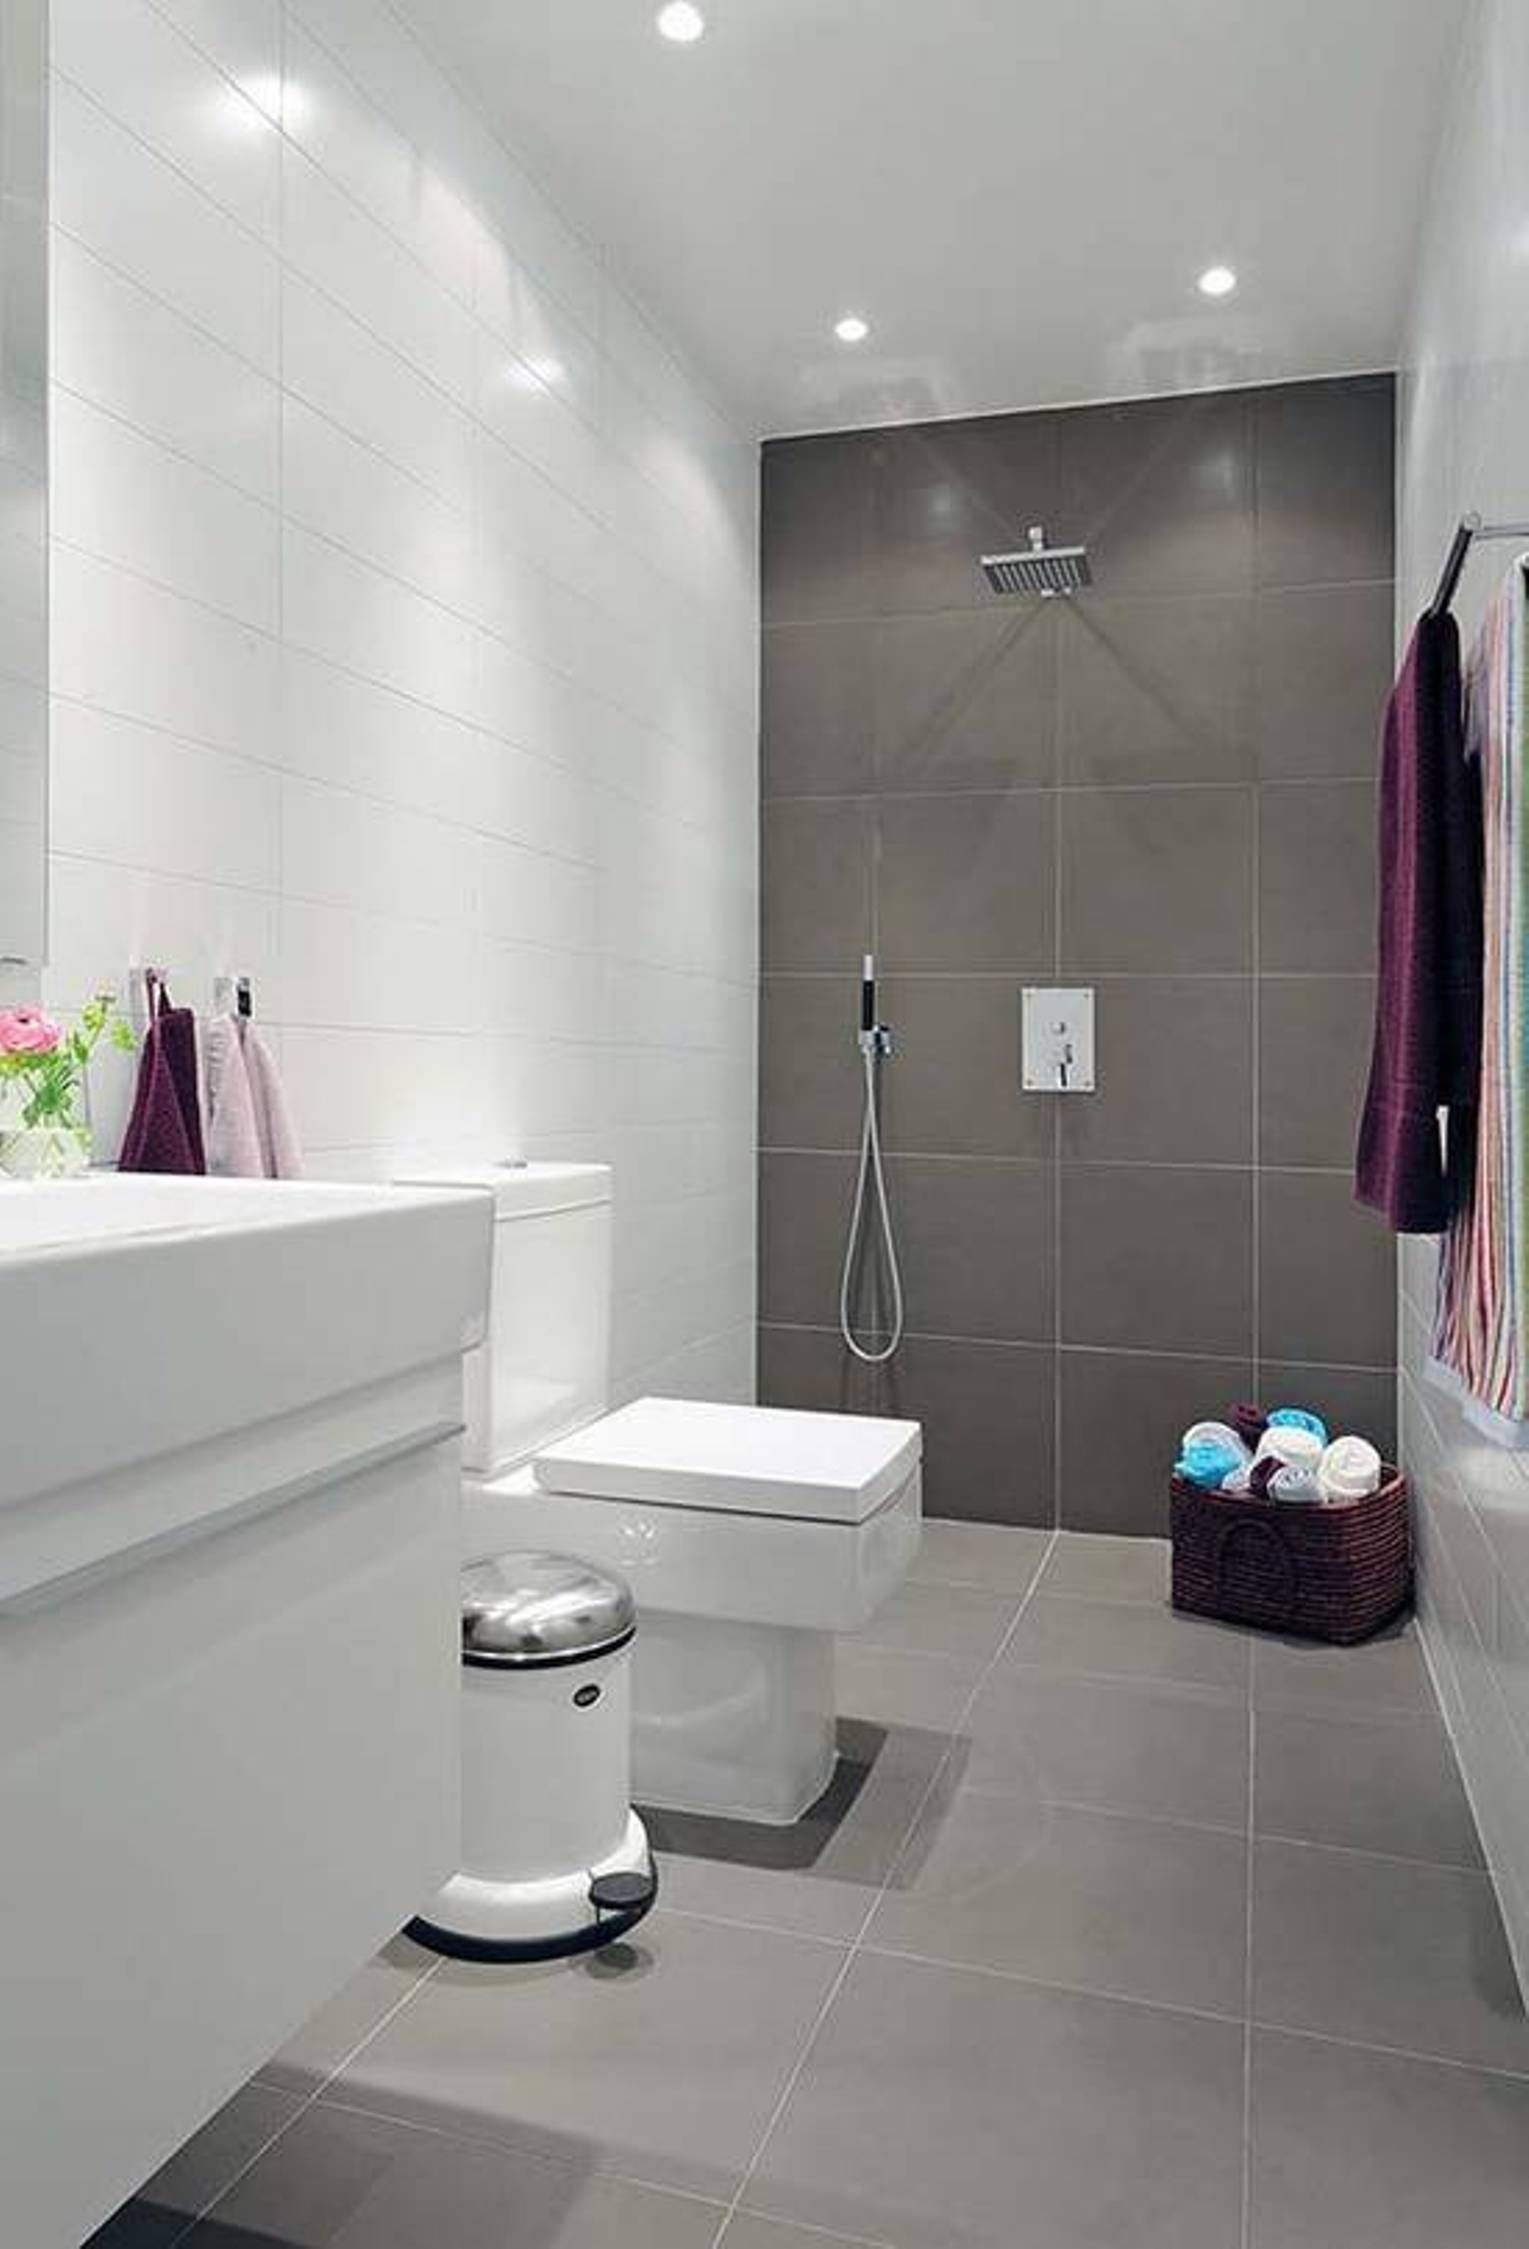 Some Simple Small Bathroom Designs Can Help You Utilize Every Inch Of A Small Space In This Article We Ll Show You How To Transform Your Small Bathroom